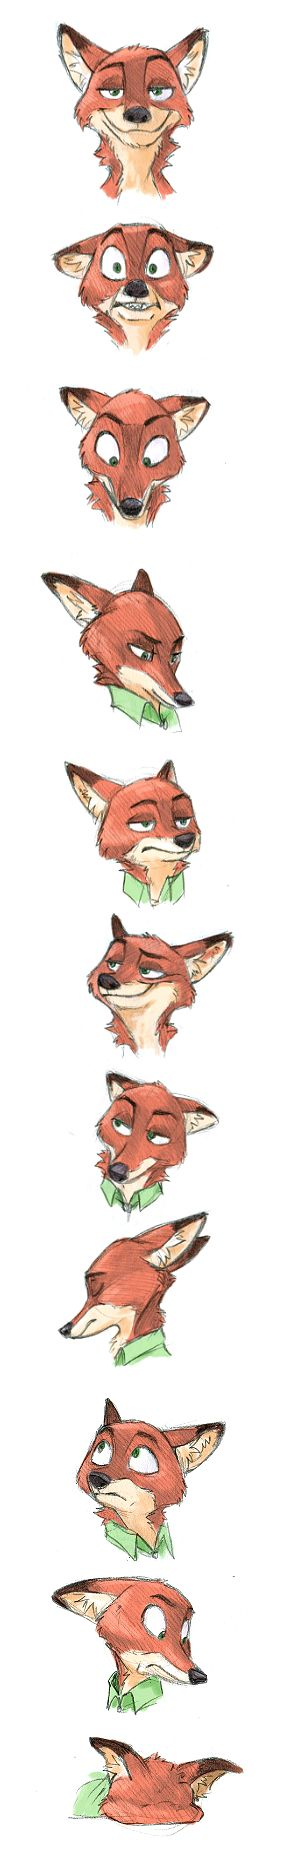 """""""Zootopia""""   © Walt Disney Animation Studios*  • Blog/Website   (www.disneyanimation.com) • Online Store    (http://www.disneystore.com)  ★    CHARACTER DESIGN REFERENCES™ (https://www.facebook.com/CharacterDesignReferences & https://www.pinterest.com/characterdesigh) • Love Character Design? Join the #CDChallenge (link→ https://www.facebook.com/groups/CharacterDesignChallenge) Share your unique vision of a theme, promote your art in a community of over 50.000 artists!    ★"""